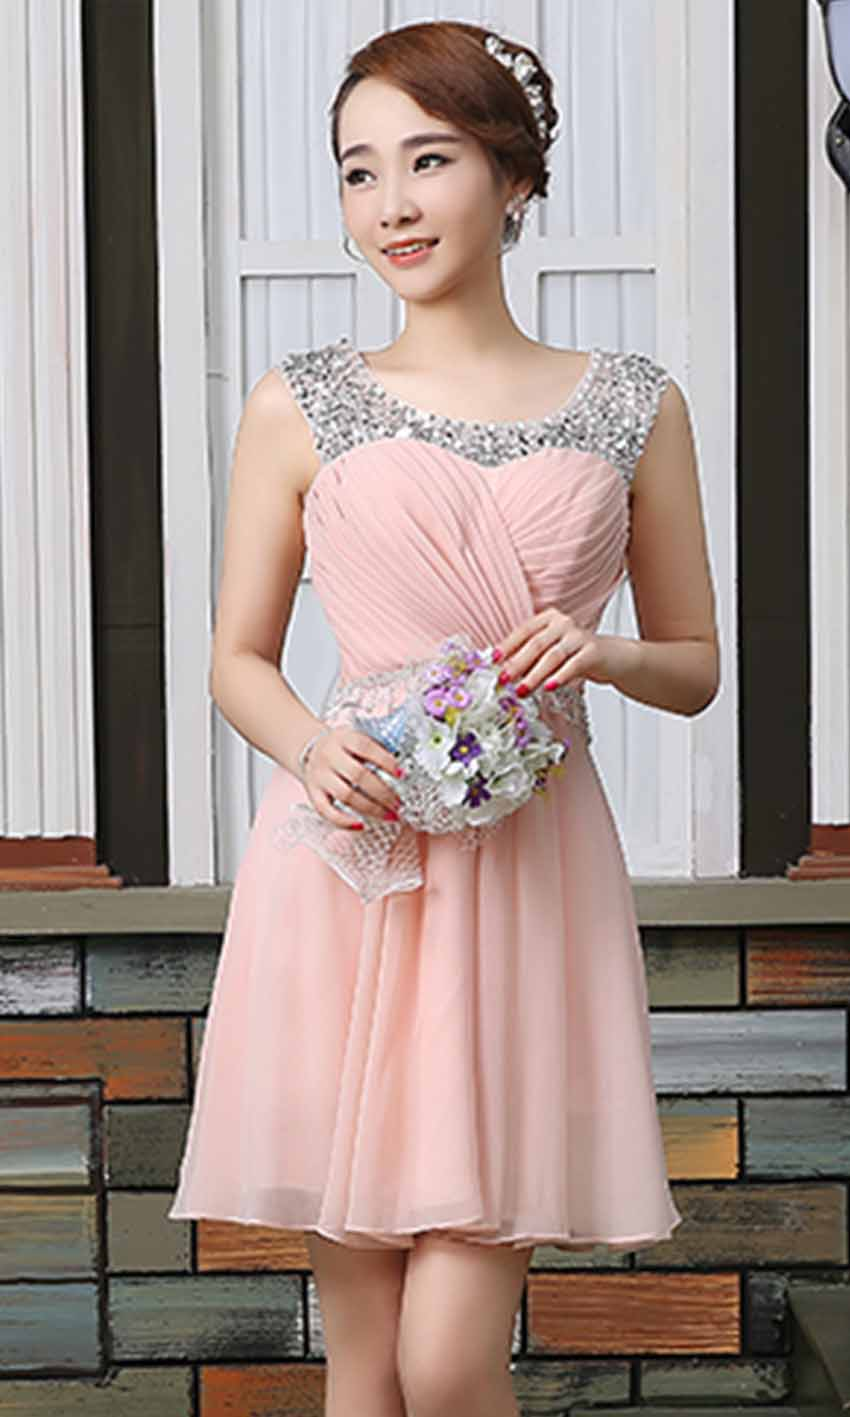 Girly Pink Jeweled Illusion Short Prom Dresses UK KSP383 [KSP383 ...